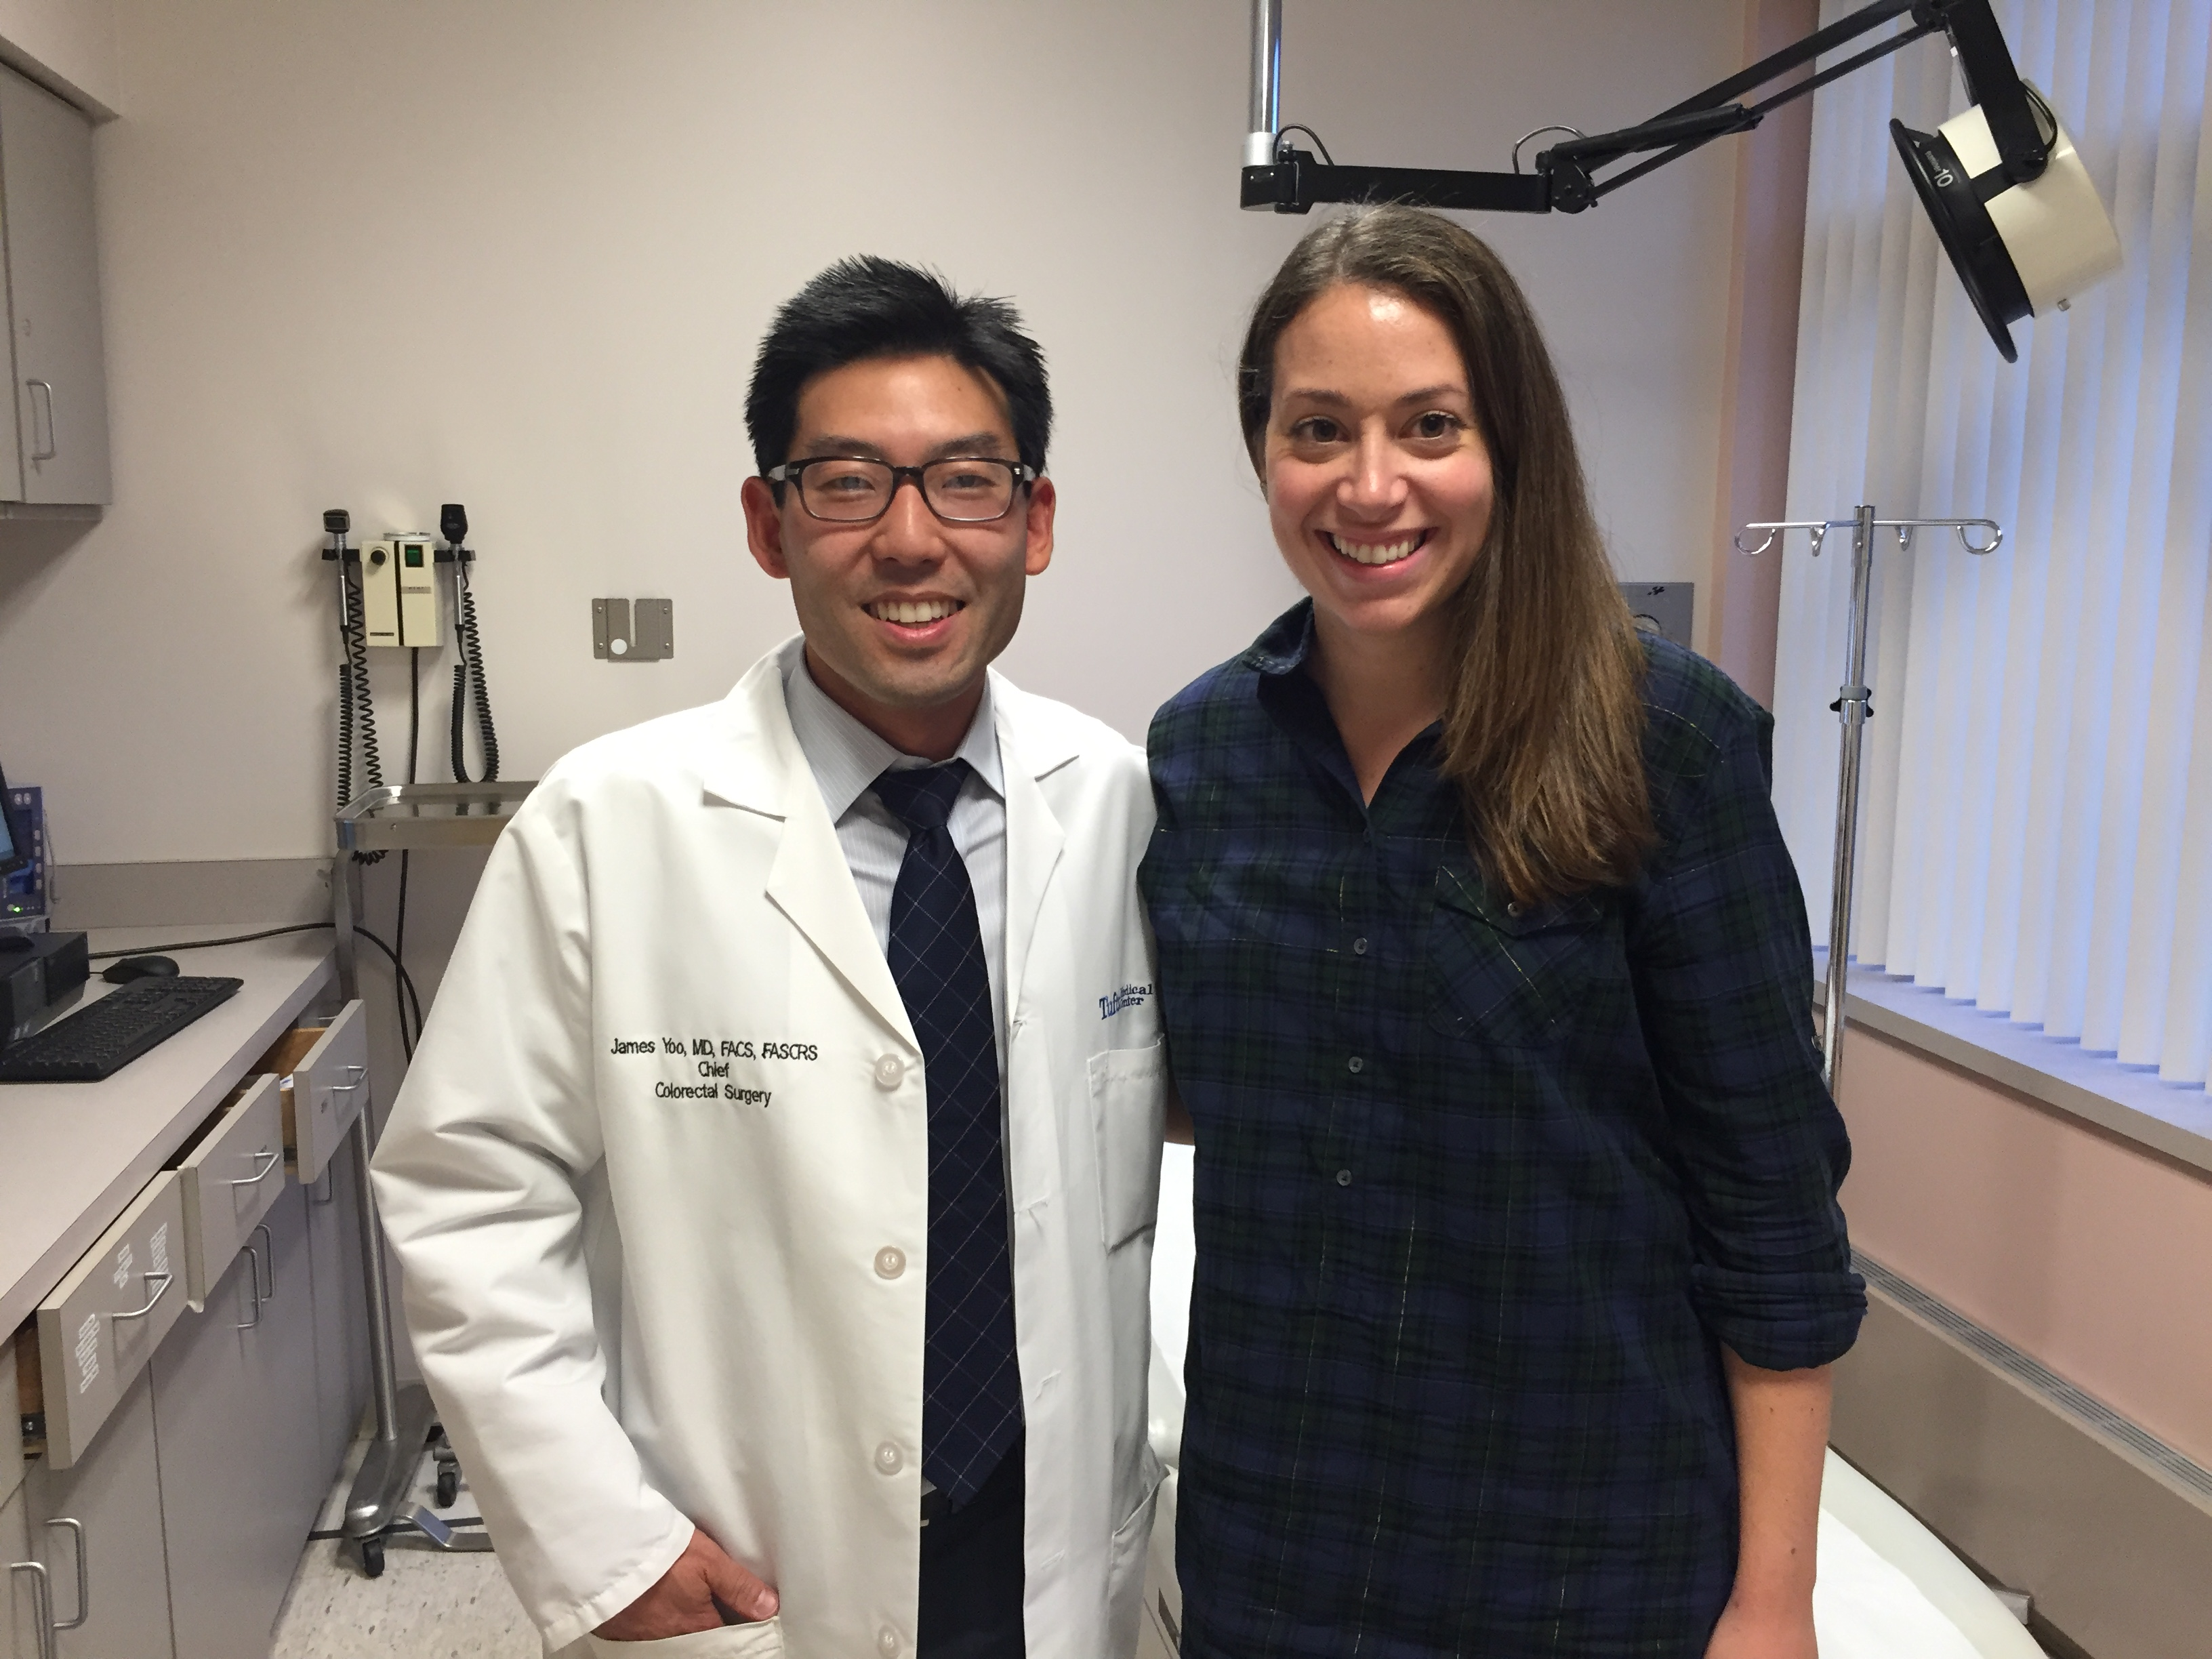 Chief of Colorectal Surgery James Yoo, MD and Jill Hadad Hawkins at a follow up appointment after her surgery.